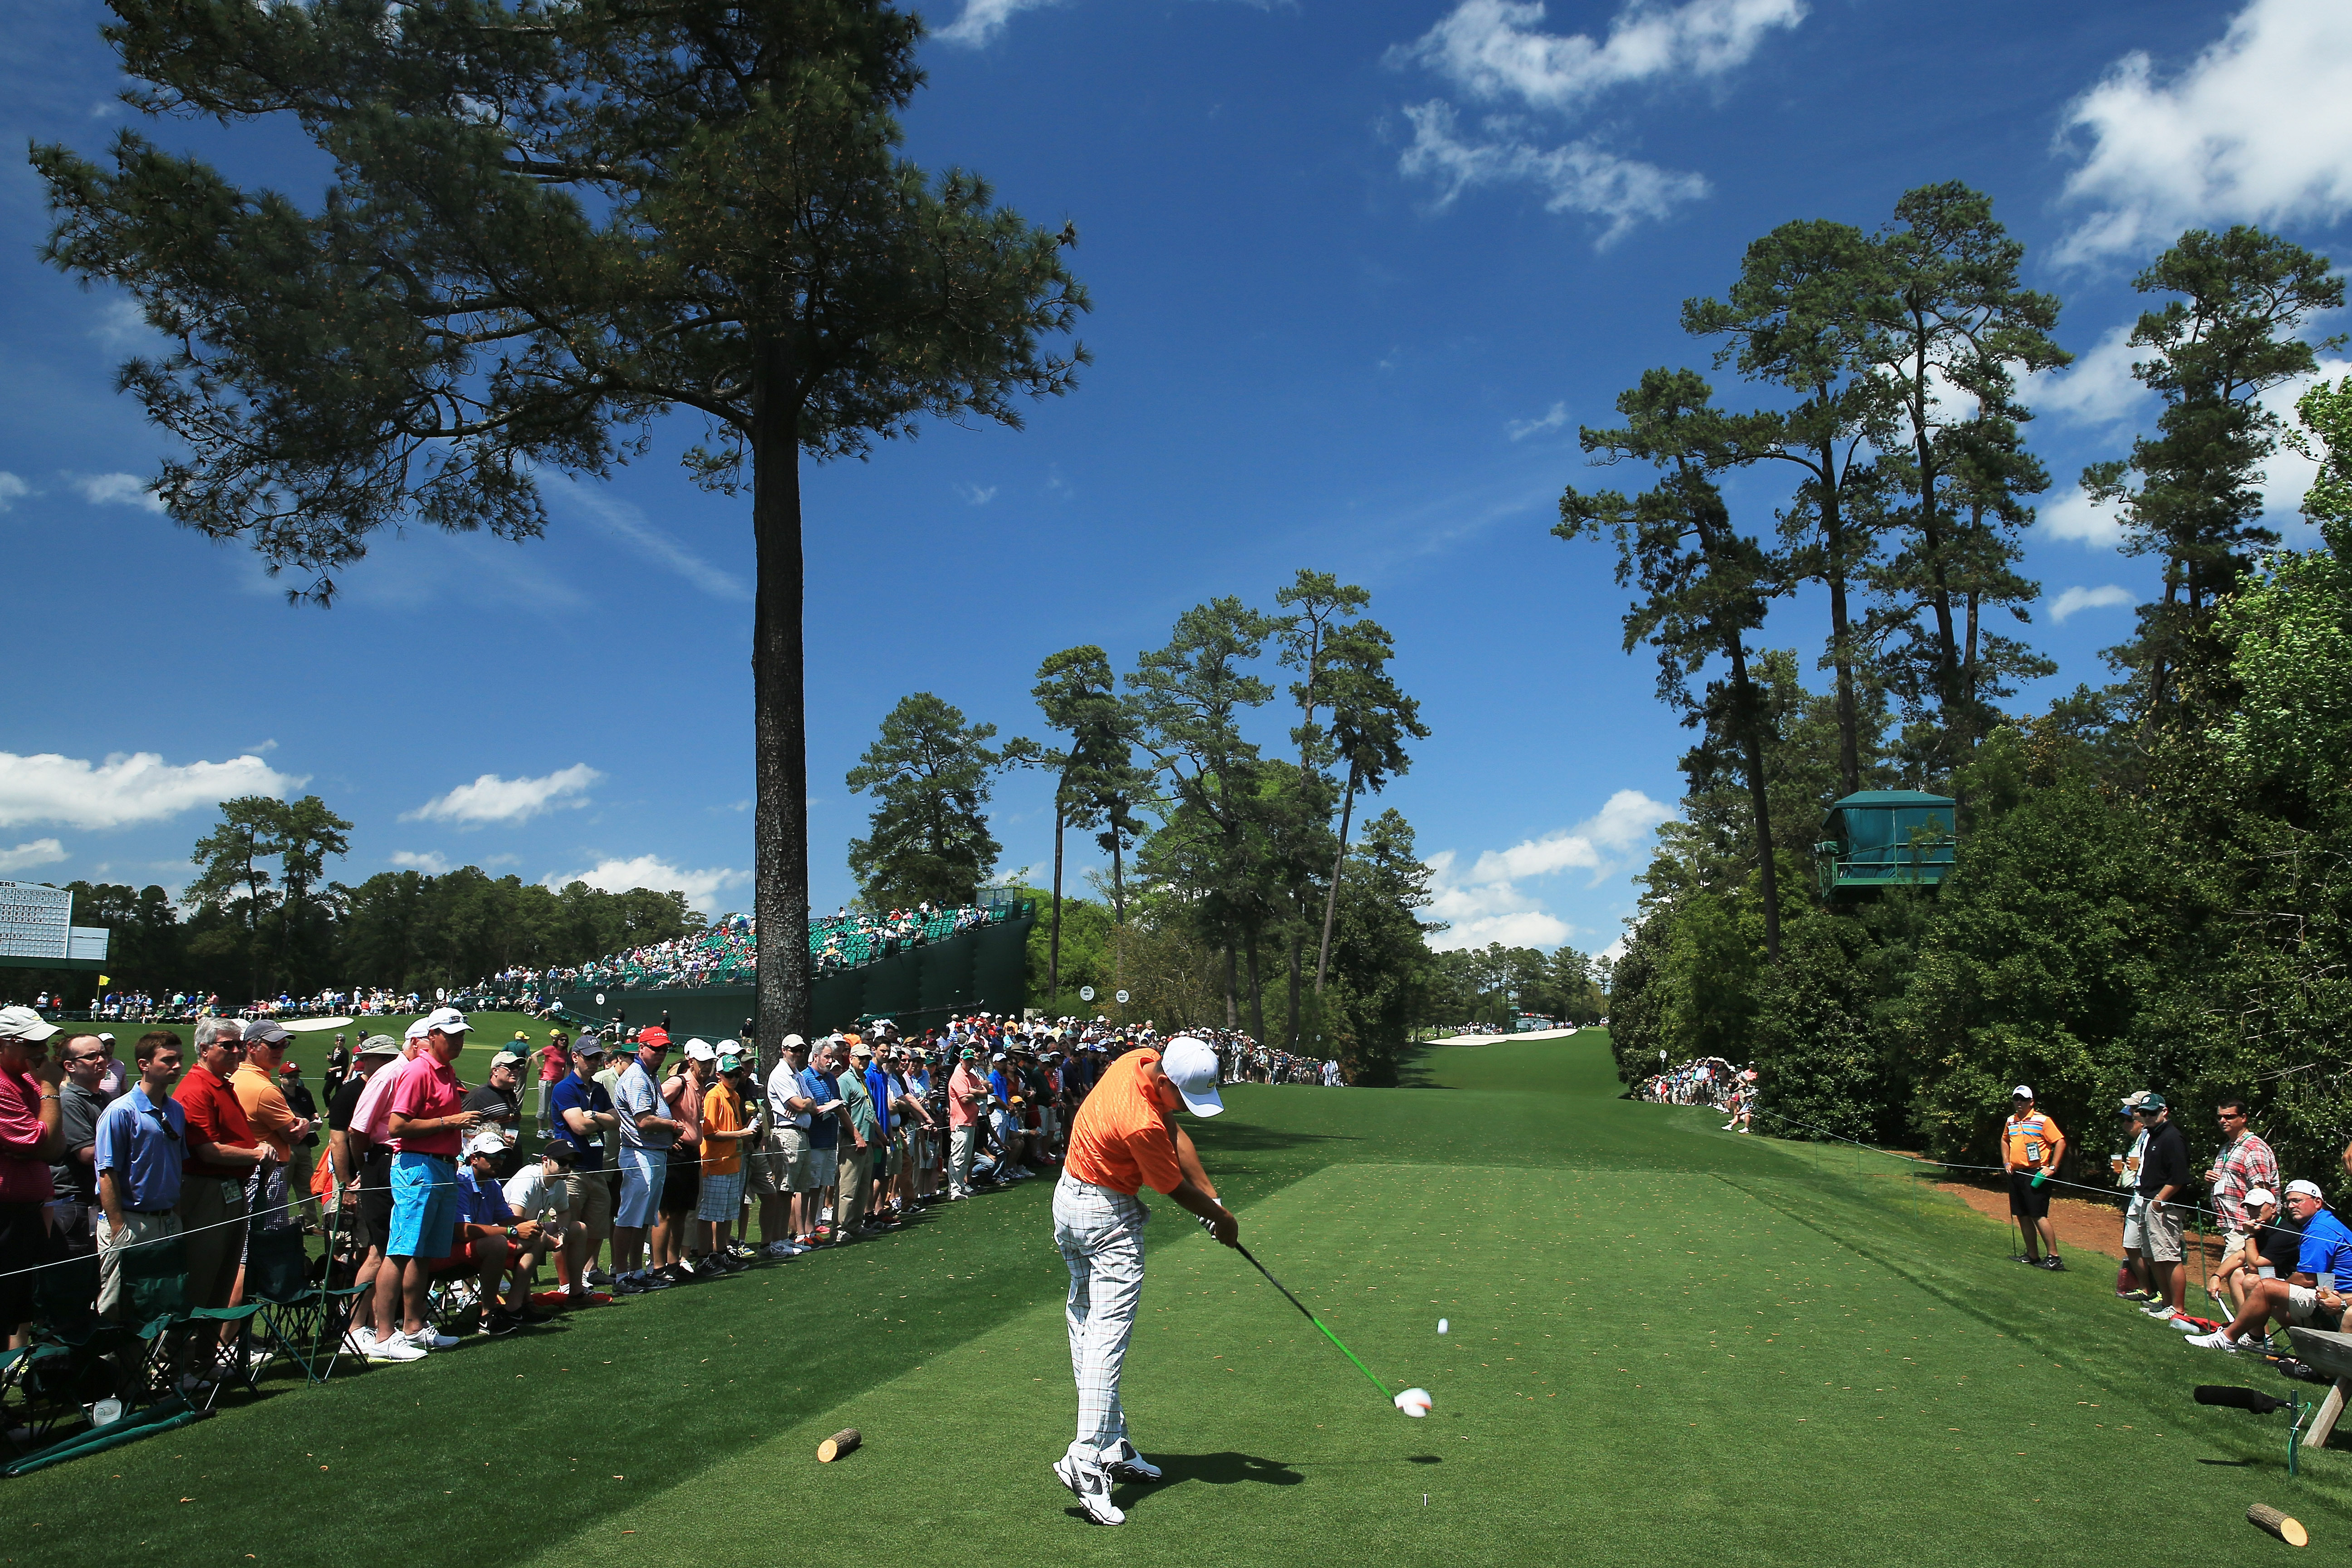 ... 2013 Masters Tournament at Augusta National Golf Club on Friday in